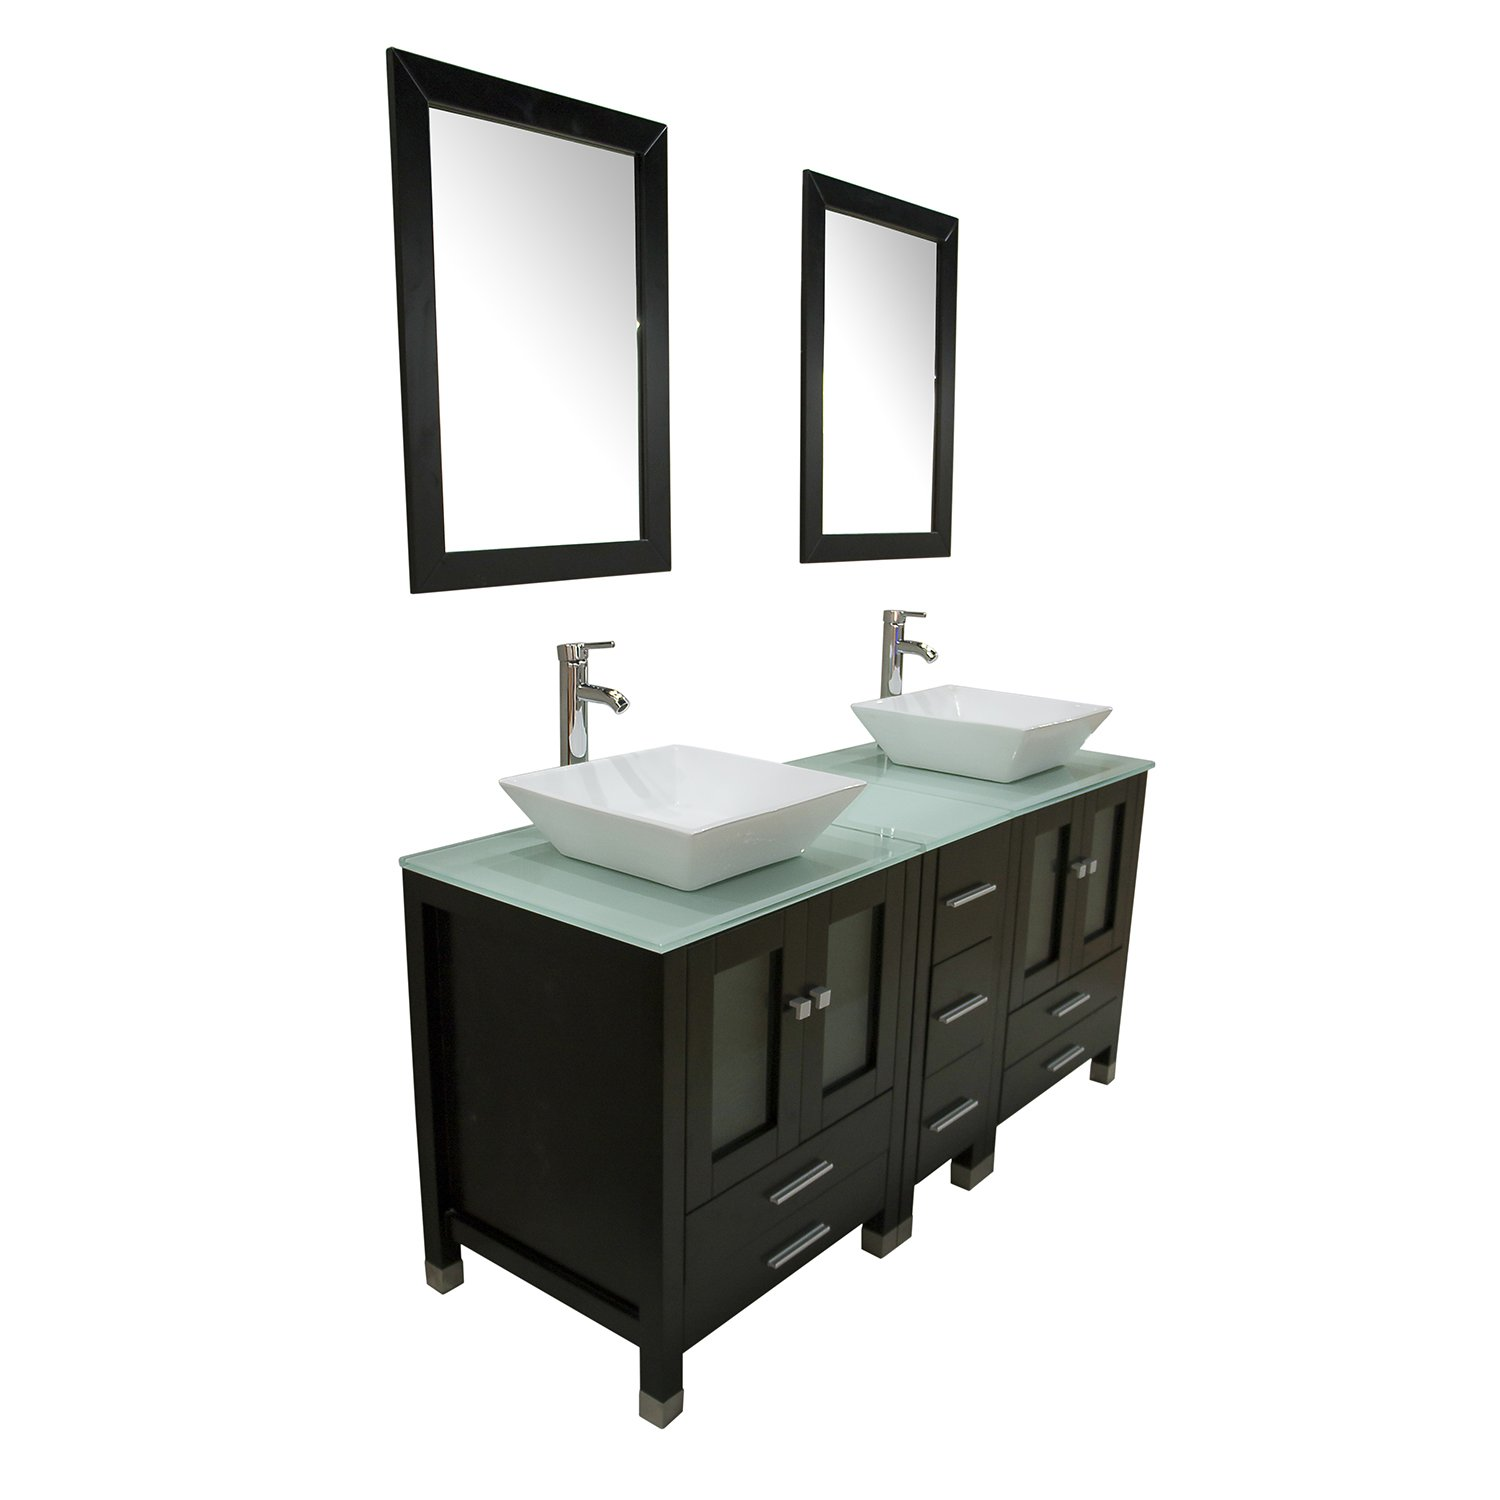 Wood bathroom cabinet - Amazon Com Walcut 60 Double Ceramic Sink Solid Wood Bathroom Tempered Glass Countertop Vanity Cabinet Modern Contemporary Design W Mirror Kitchen